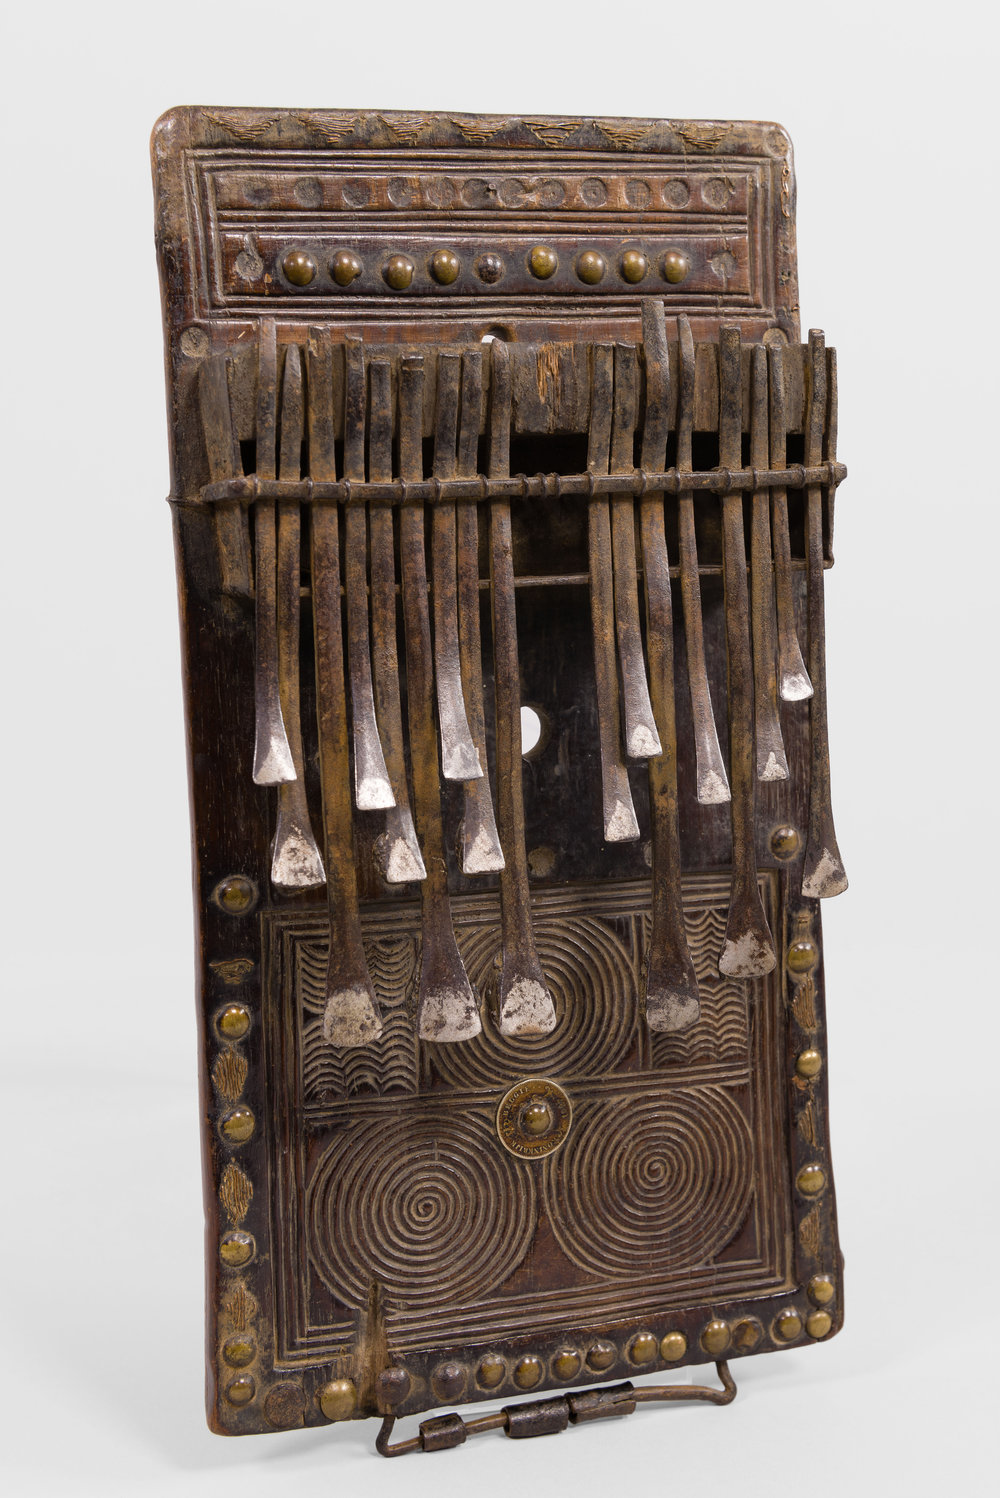 Artist unknown (Chokwe peoples, Angola), lamellophone (chisanji), late 19th century, wood, iron, H: 36.2 cm, W: 18.7 cm, D: 5.1 cm. Musical Instrument Museum 2013.56.1. Image © Musical Instrument Museum. Photograph Troy Sharp, 2016